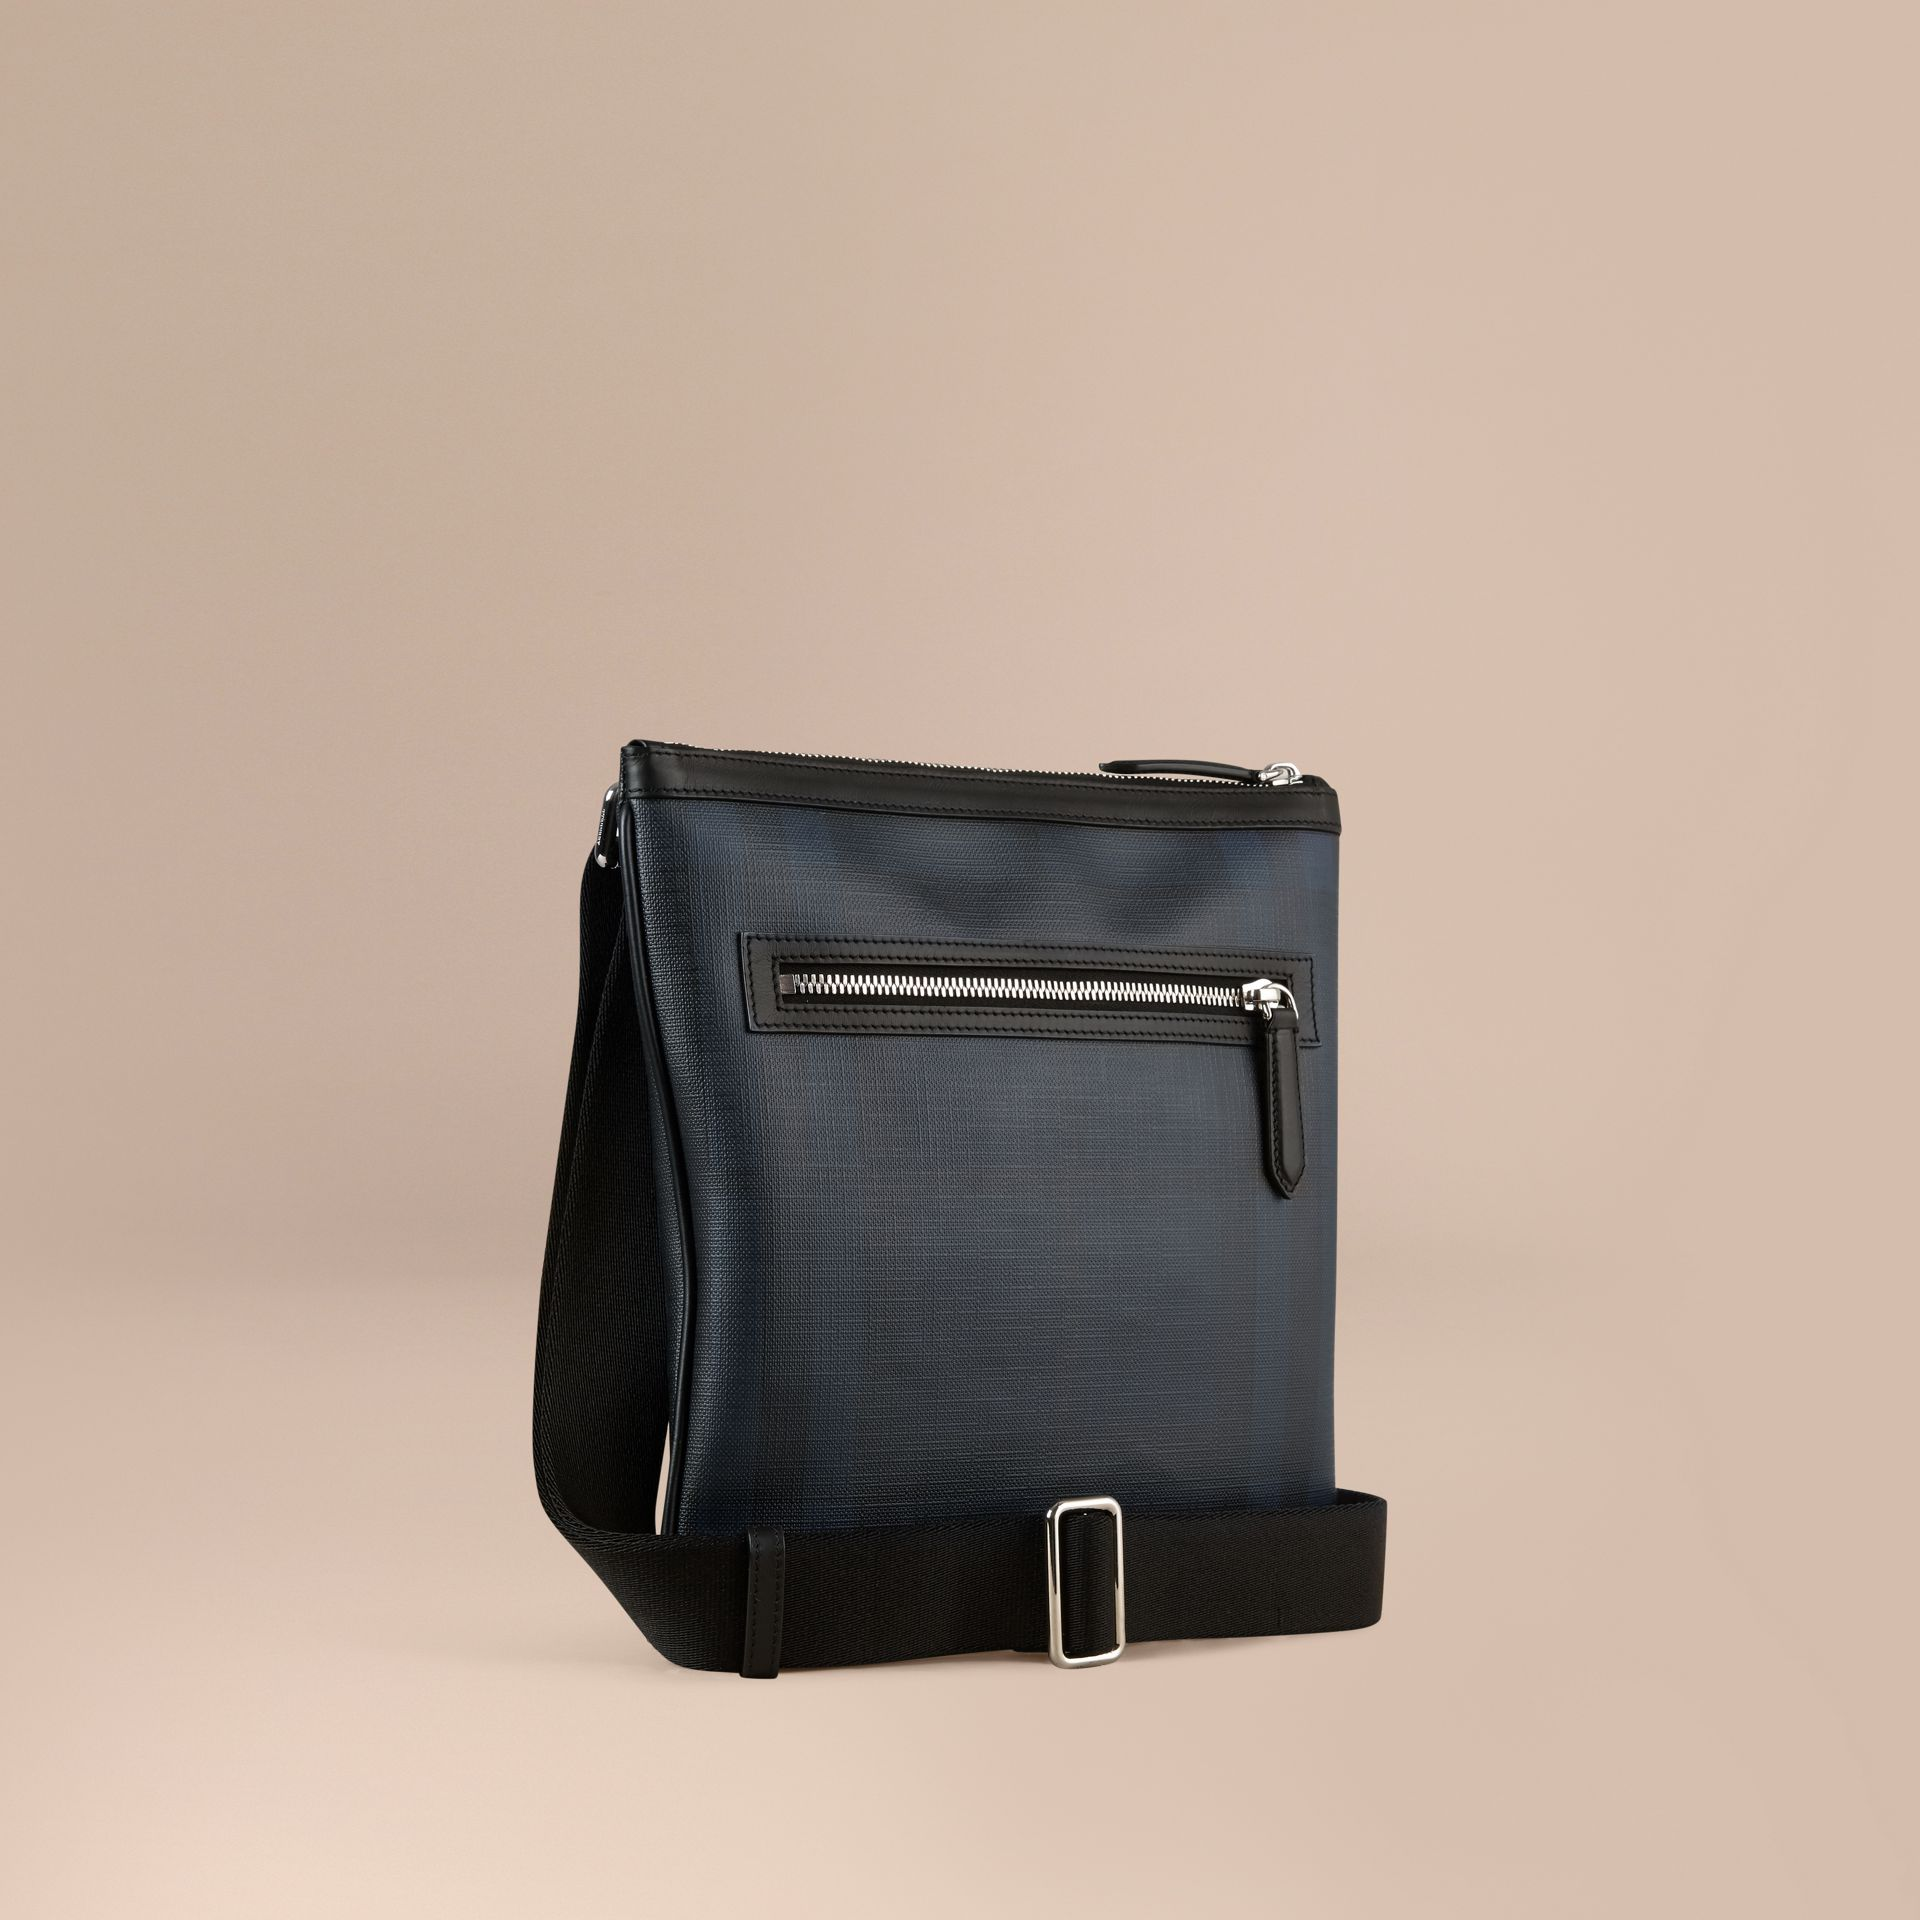 Leather Trim London Check Crossbody Bag Navy/black - gallery image 1